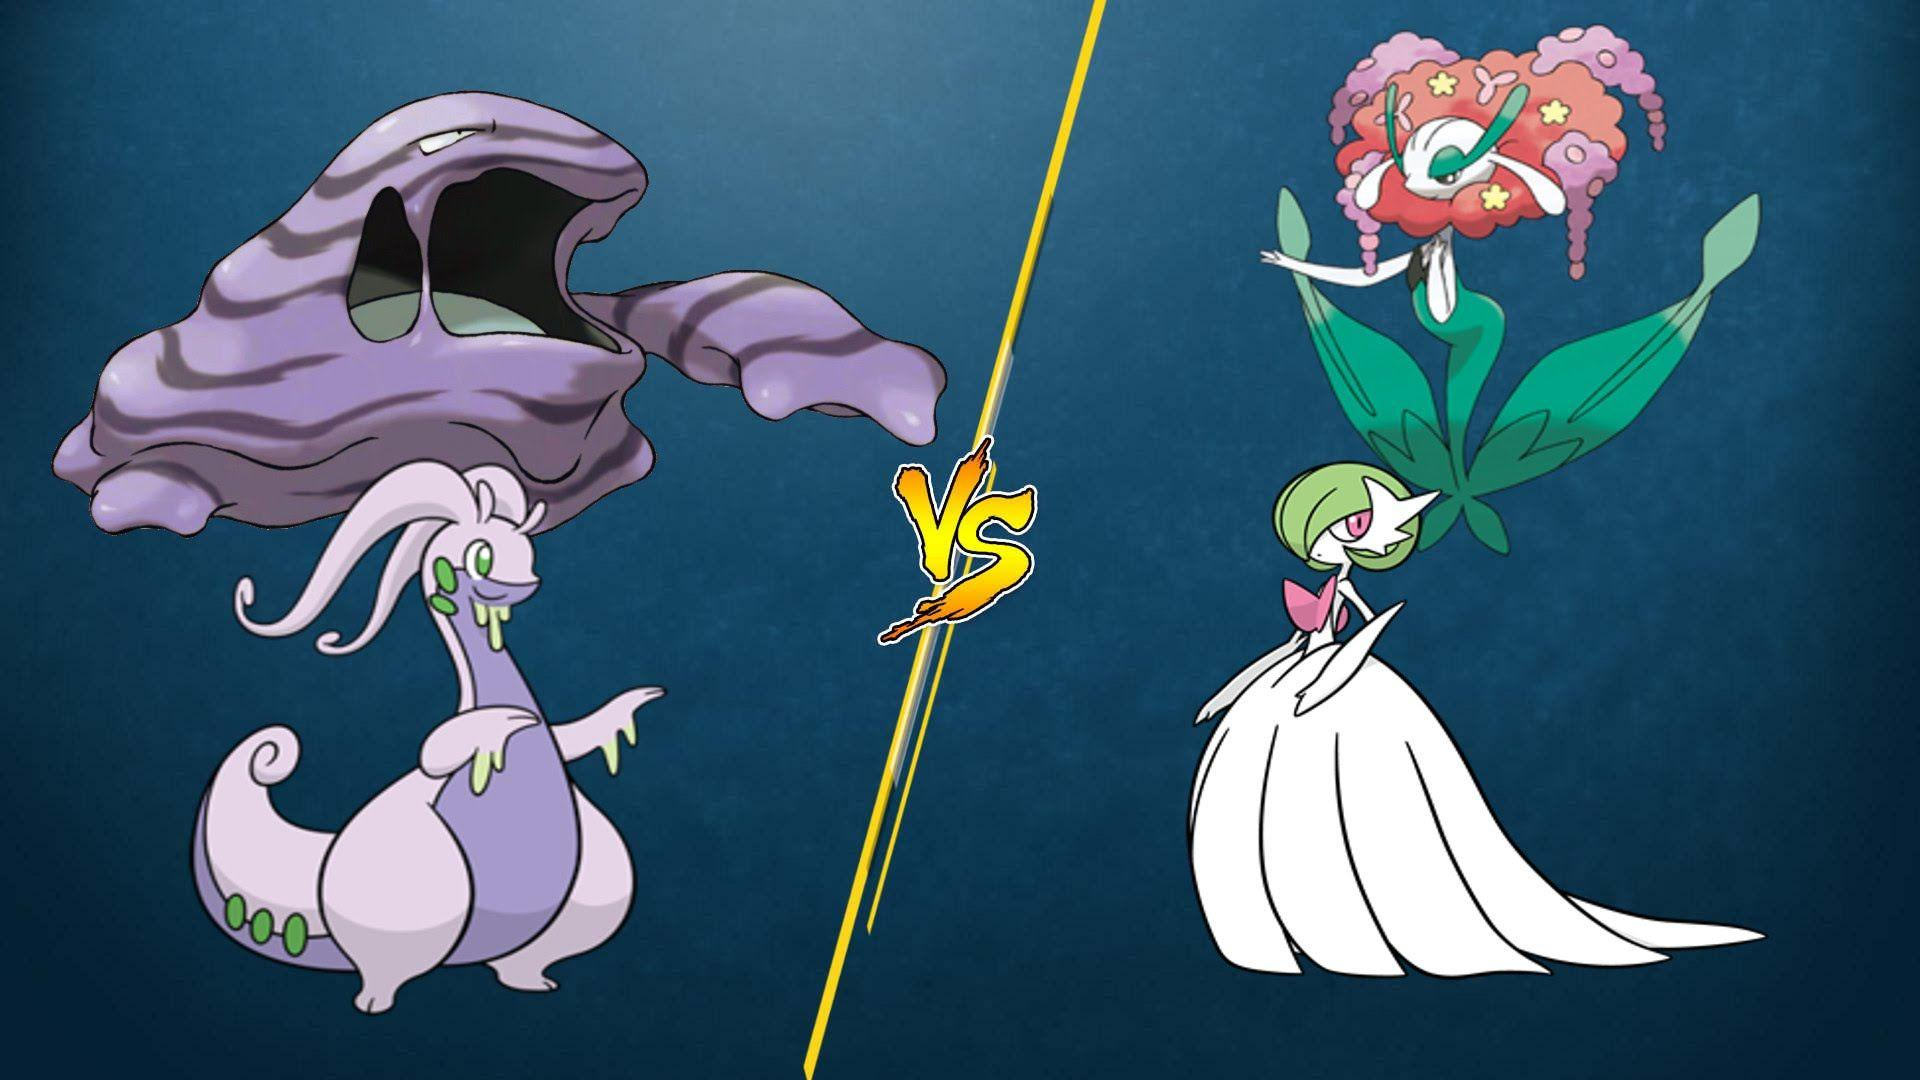 PTCGO Stream Match] Goodra/Muk vs M Gardevoir/Florges - YouTube